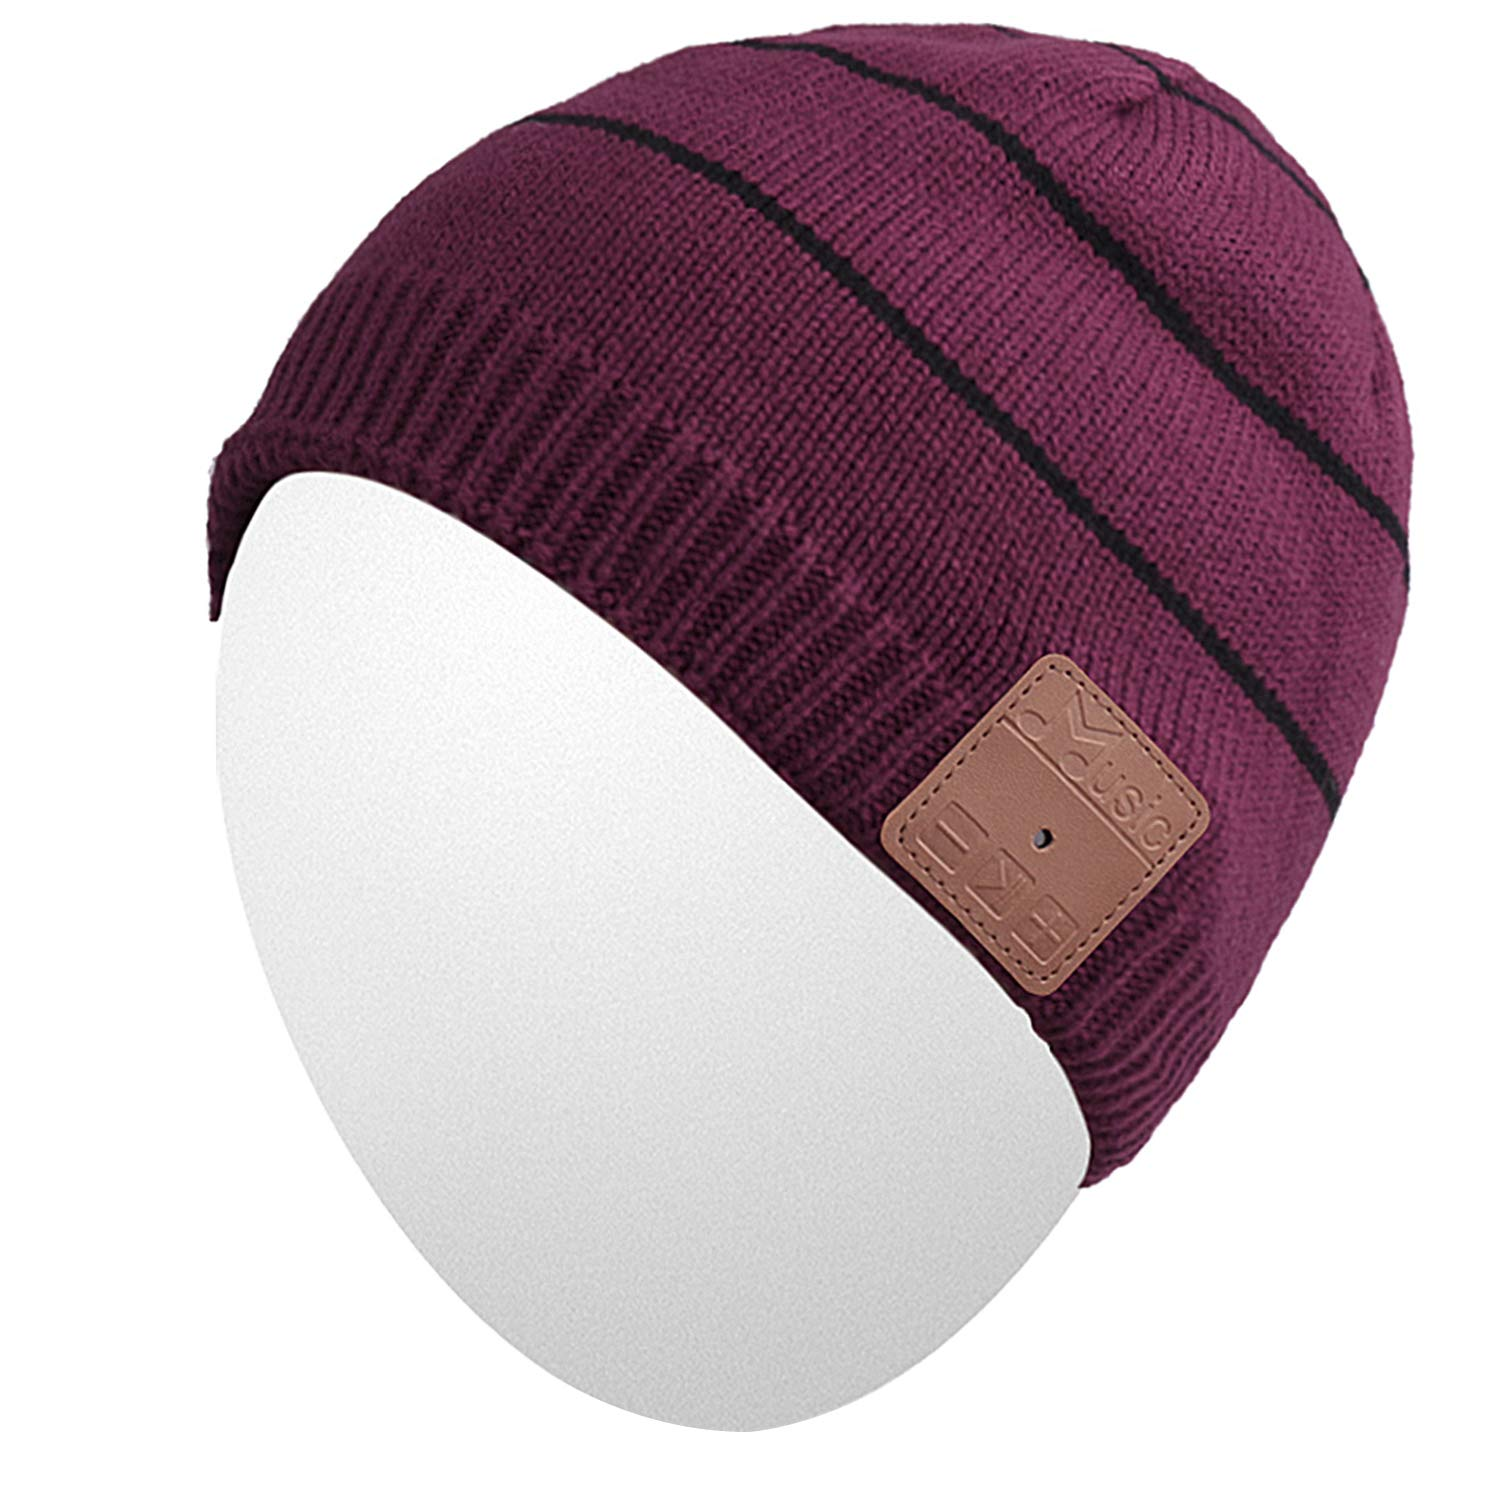 Qshell Washable Winter Mens Womens Hat Bluetooth Beanie Running Cap with Bluetooth Stereo Headphones Mic Hands Free Rechargeable Battery for Outdoor Sports Skating Camping,Christmas Gifts - Red